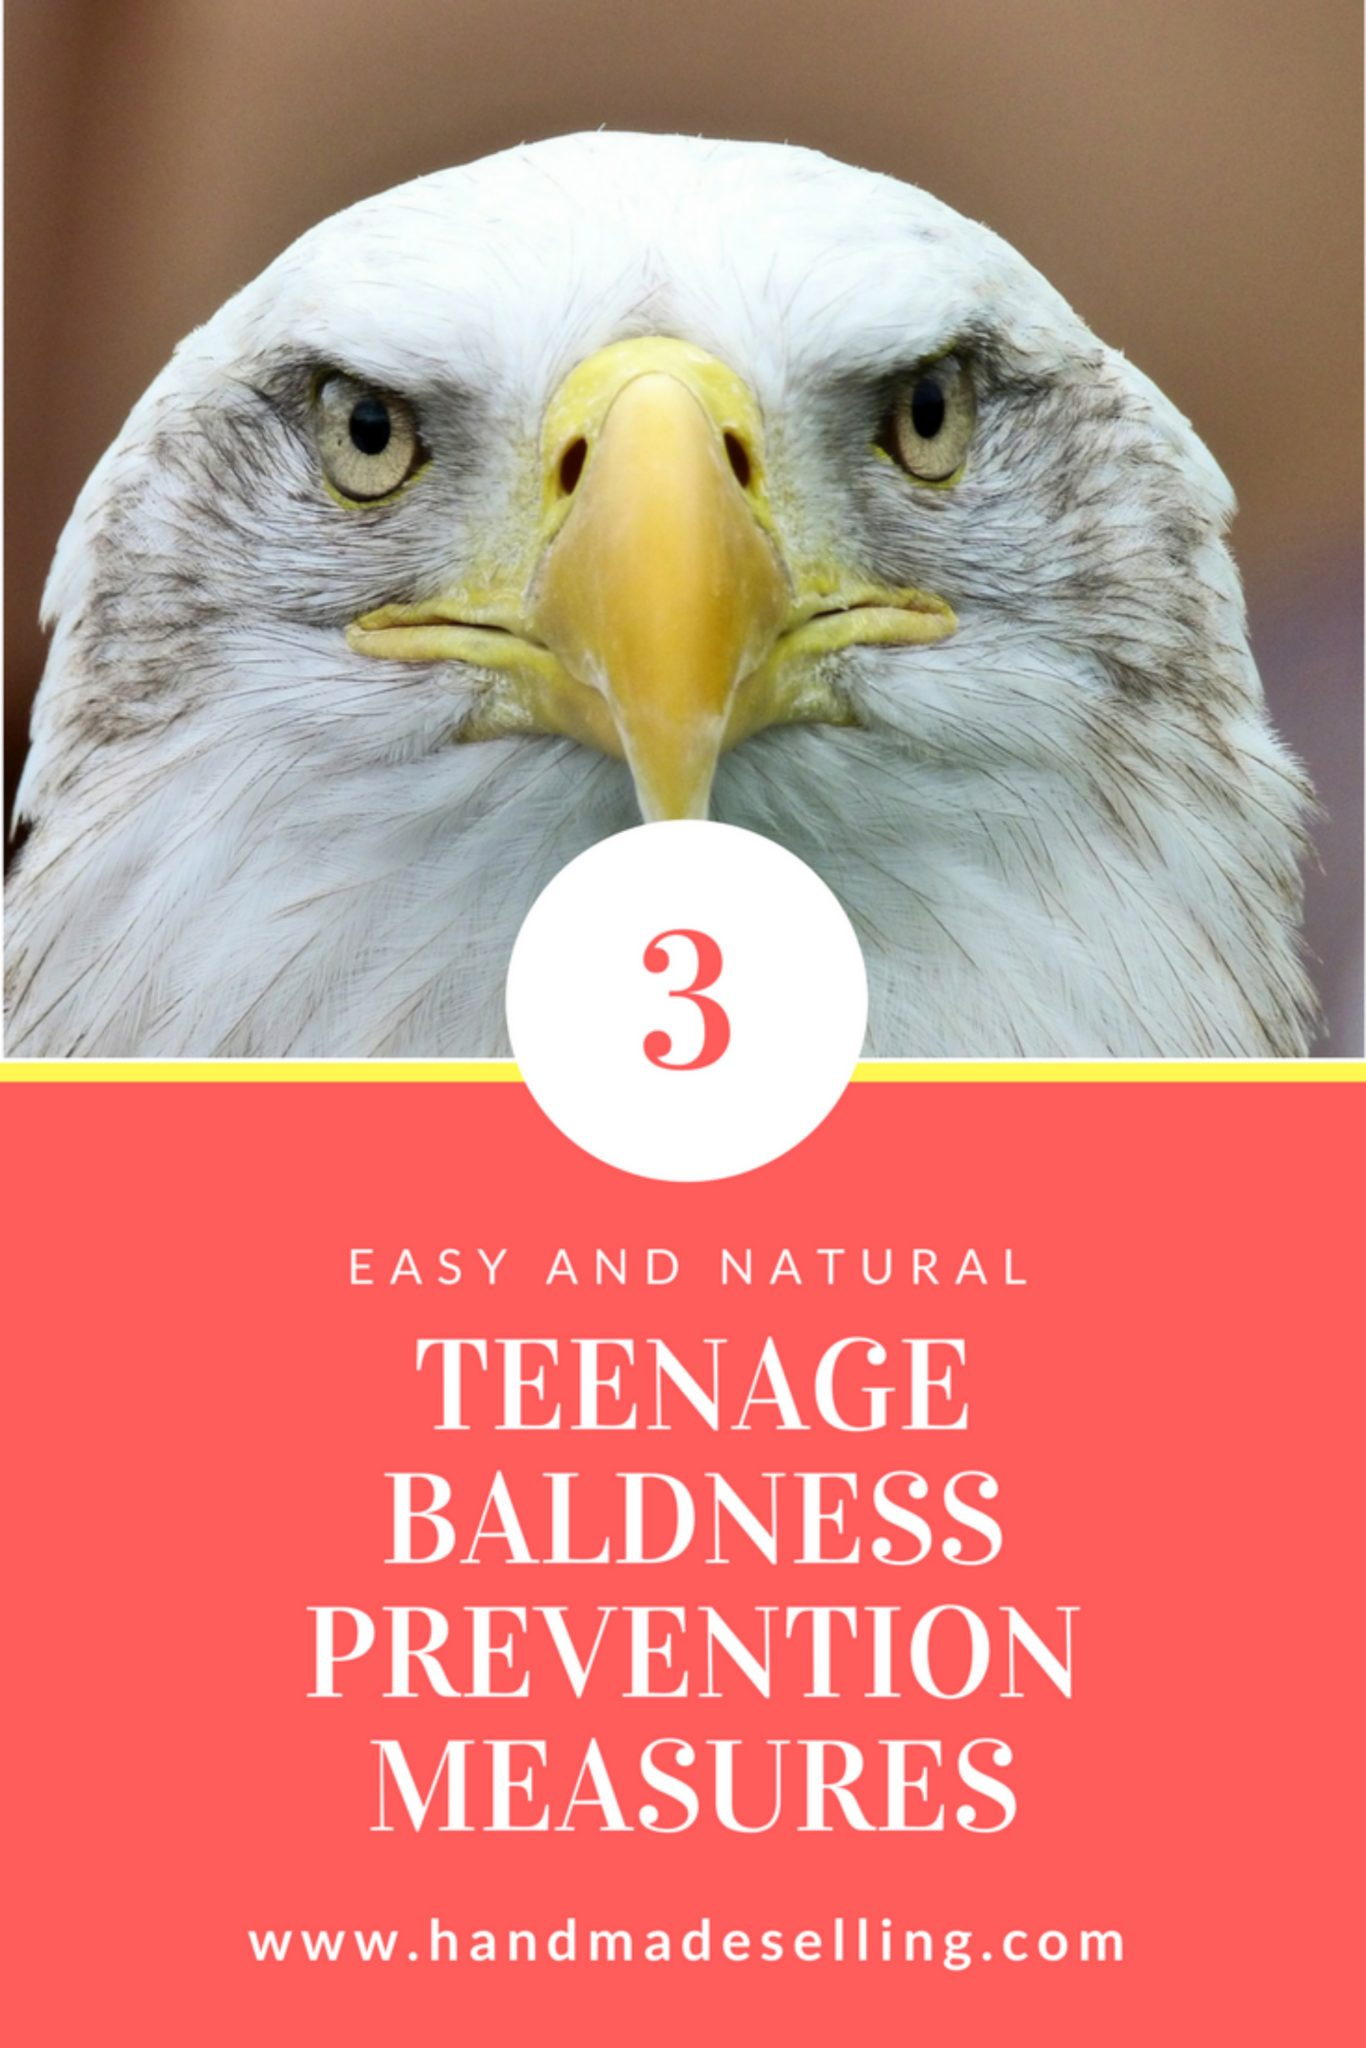 teenage baldness prevention measures